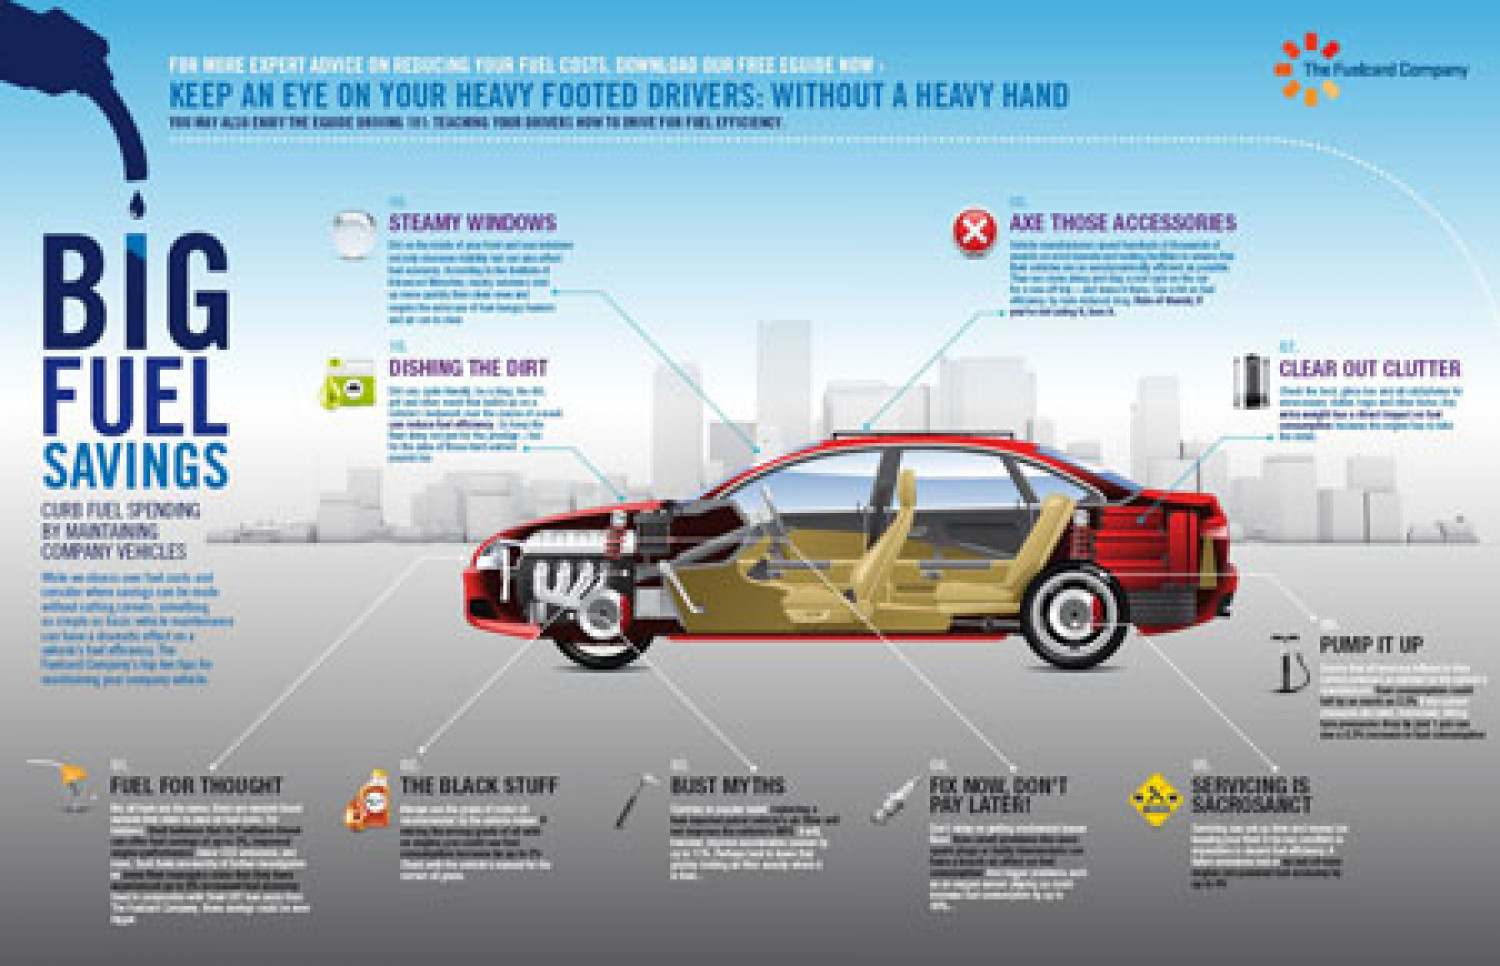 Big Fuel Savings: Curb Fuel Spending by Maintaining Company Vehicles Infographic